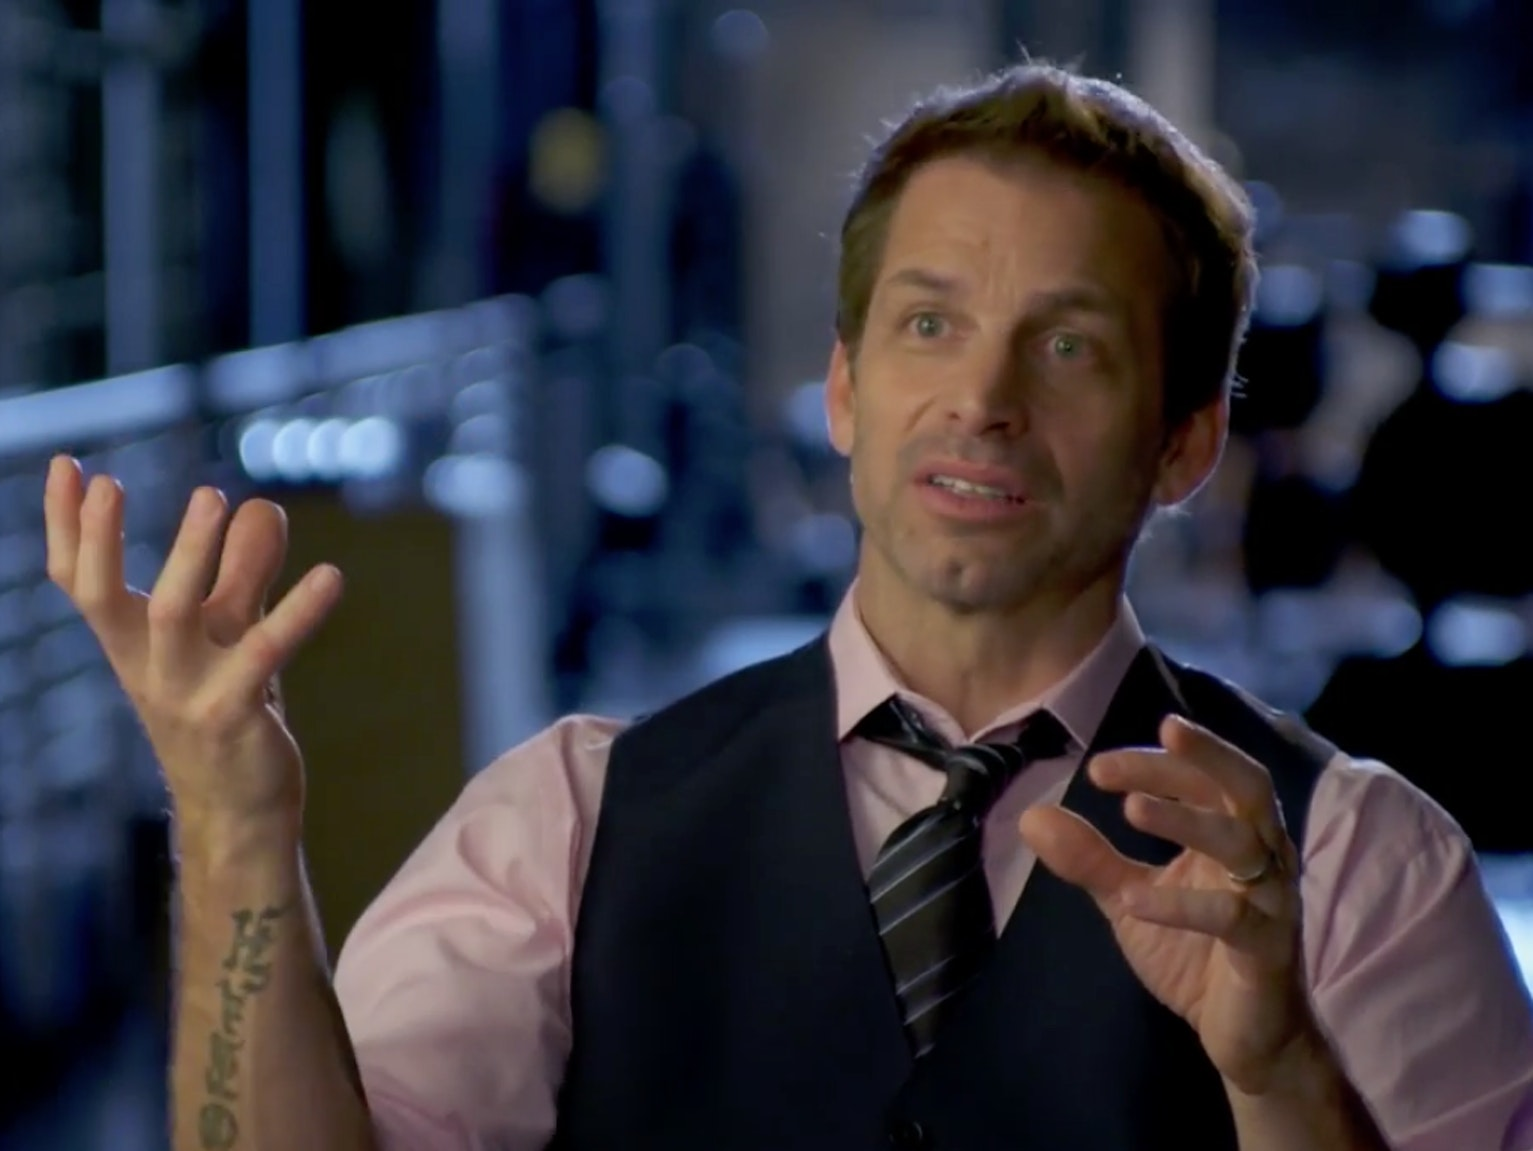 Zack Snyder Explains New 'Batman v Superman' Trailer in Bizarre Turkish Airlines Video